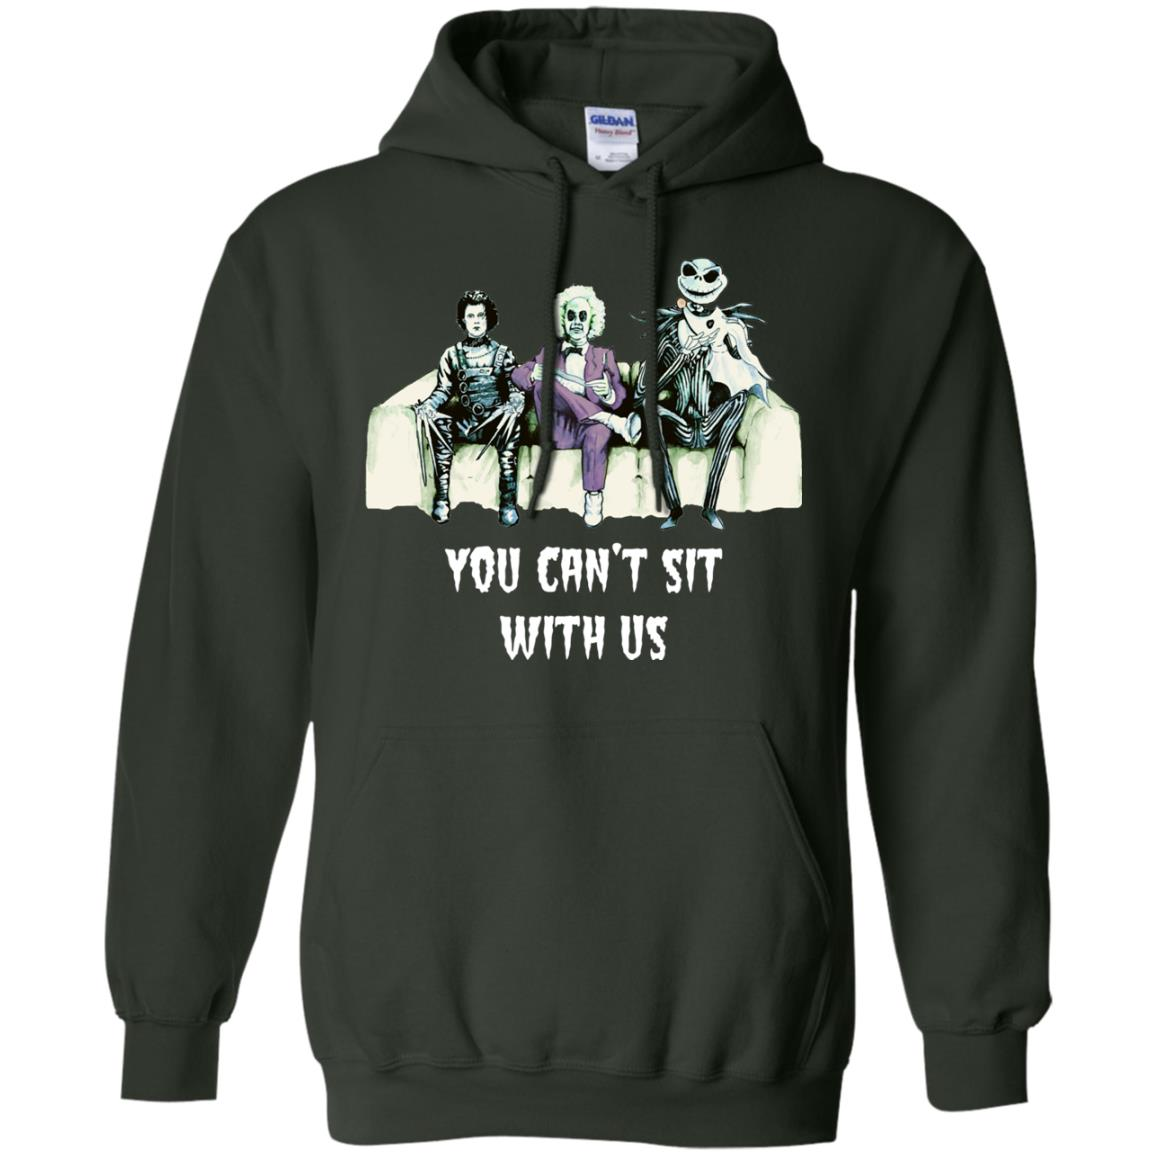 image 1279px Beetlejuice, Edward, Jack: You can't sit with us t shirt, hoodies, tank top